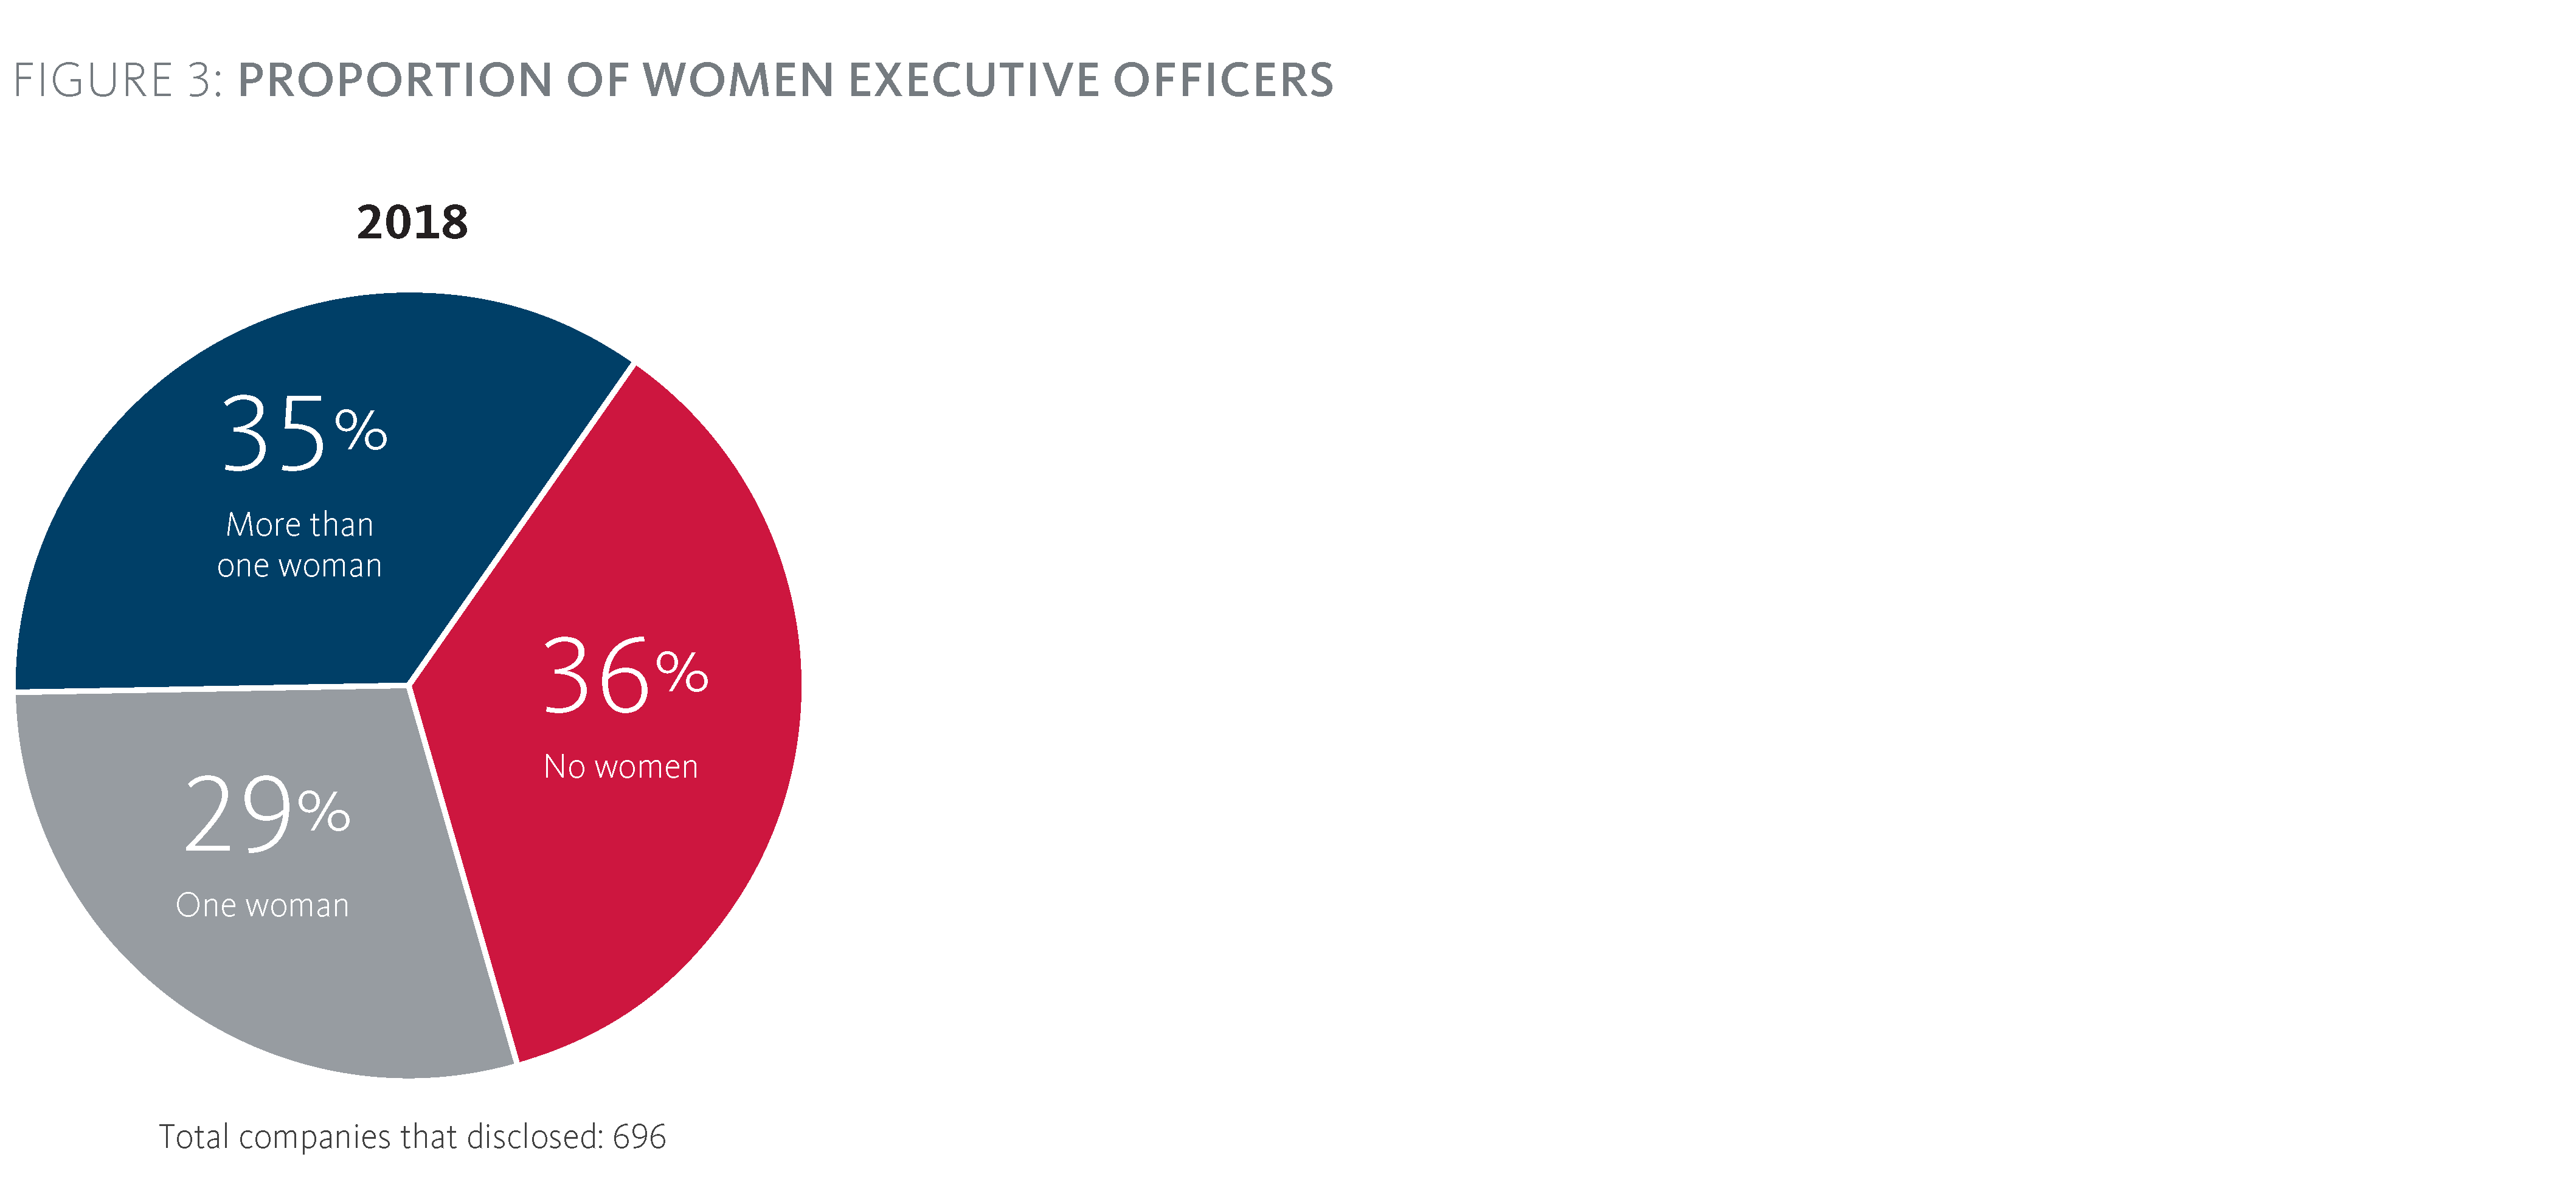 Figure 3: Proportion of Women Executive Officers